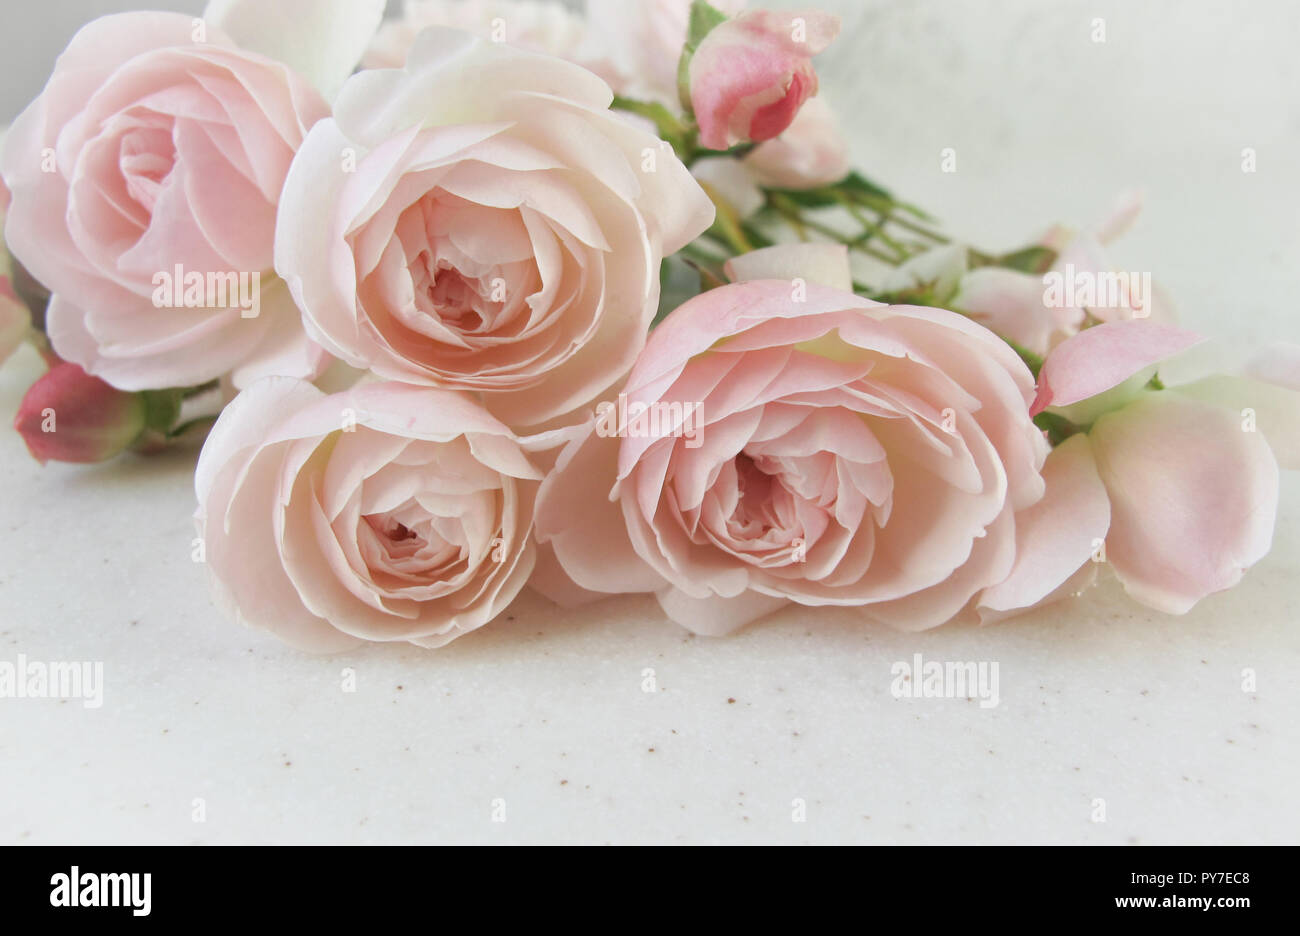 Pink Roses Isolated On White Background Perfect For Greeting Cards And Invitations Of The Wedding Birthday Valentines Day Mothers